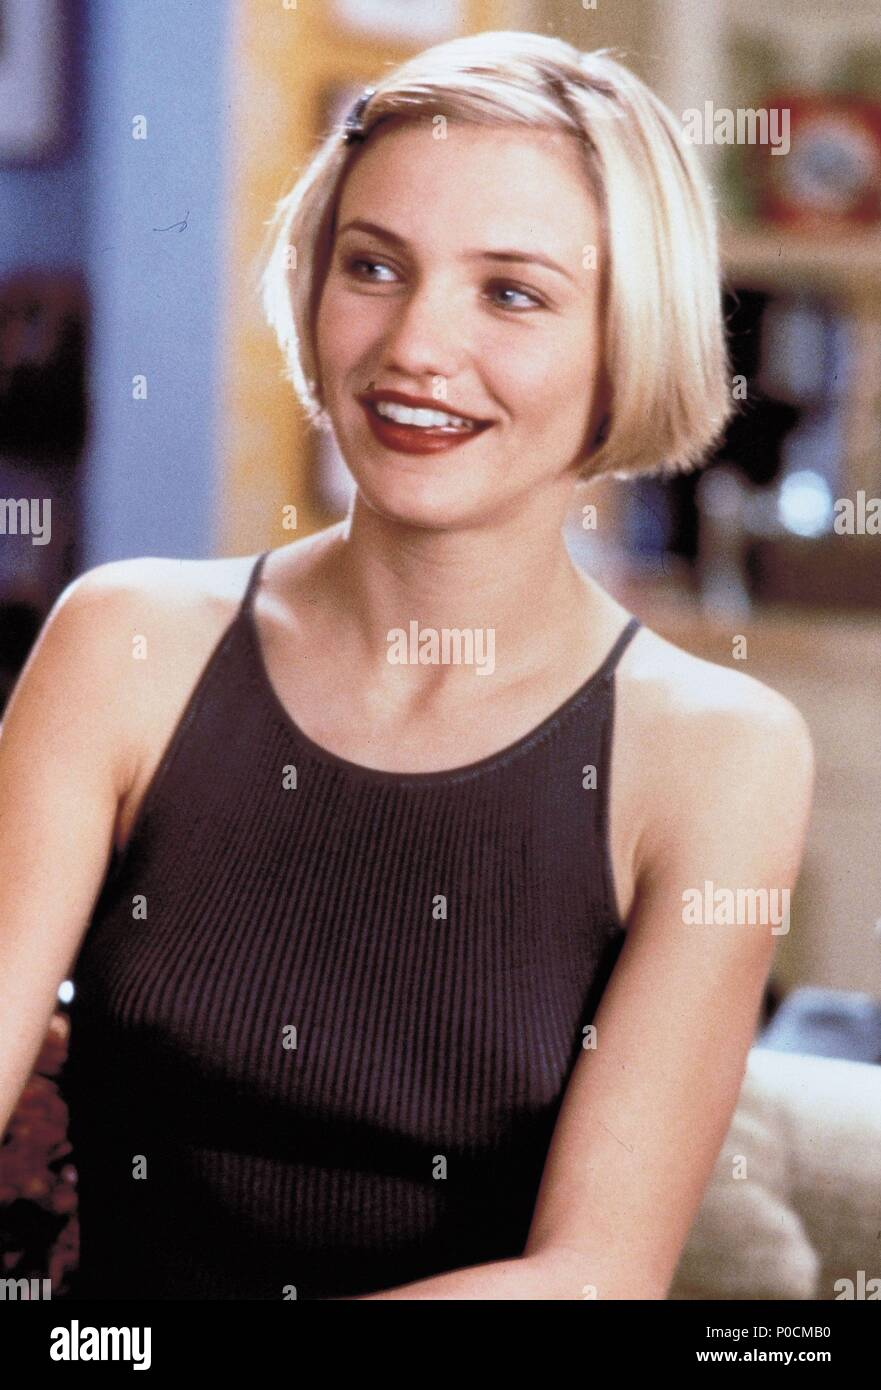 Original Film Title: THERE'S SOMETHING ABOUT MARY.  English Title: THERE'S SOMETHING ABOUT MARY.  Film Director: BOBBY & PETER FARRELLY; BOBBY FARRELLY; PETER FARRELLY.  Year: 1998.  Stars: CAMERON DIAZ. Credit: 20TH CENTURY FOX / Album - Stock Image